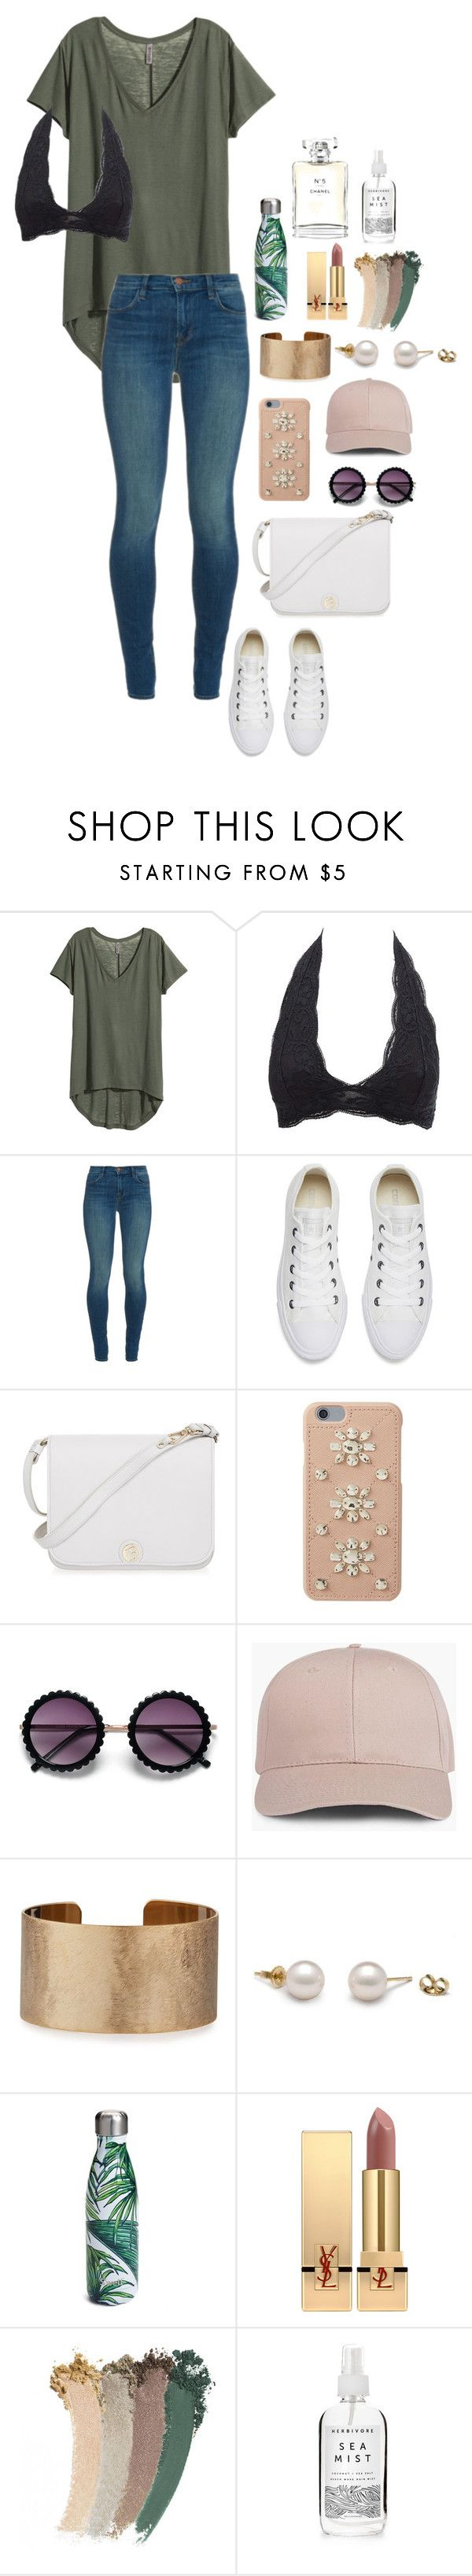 Untitled #100 – my style